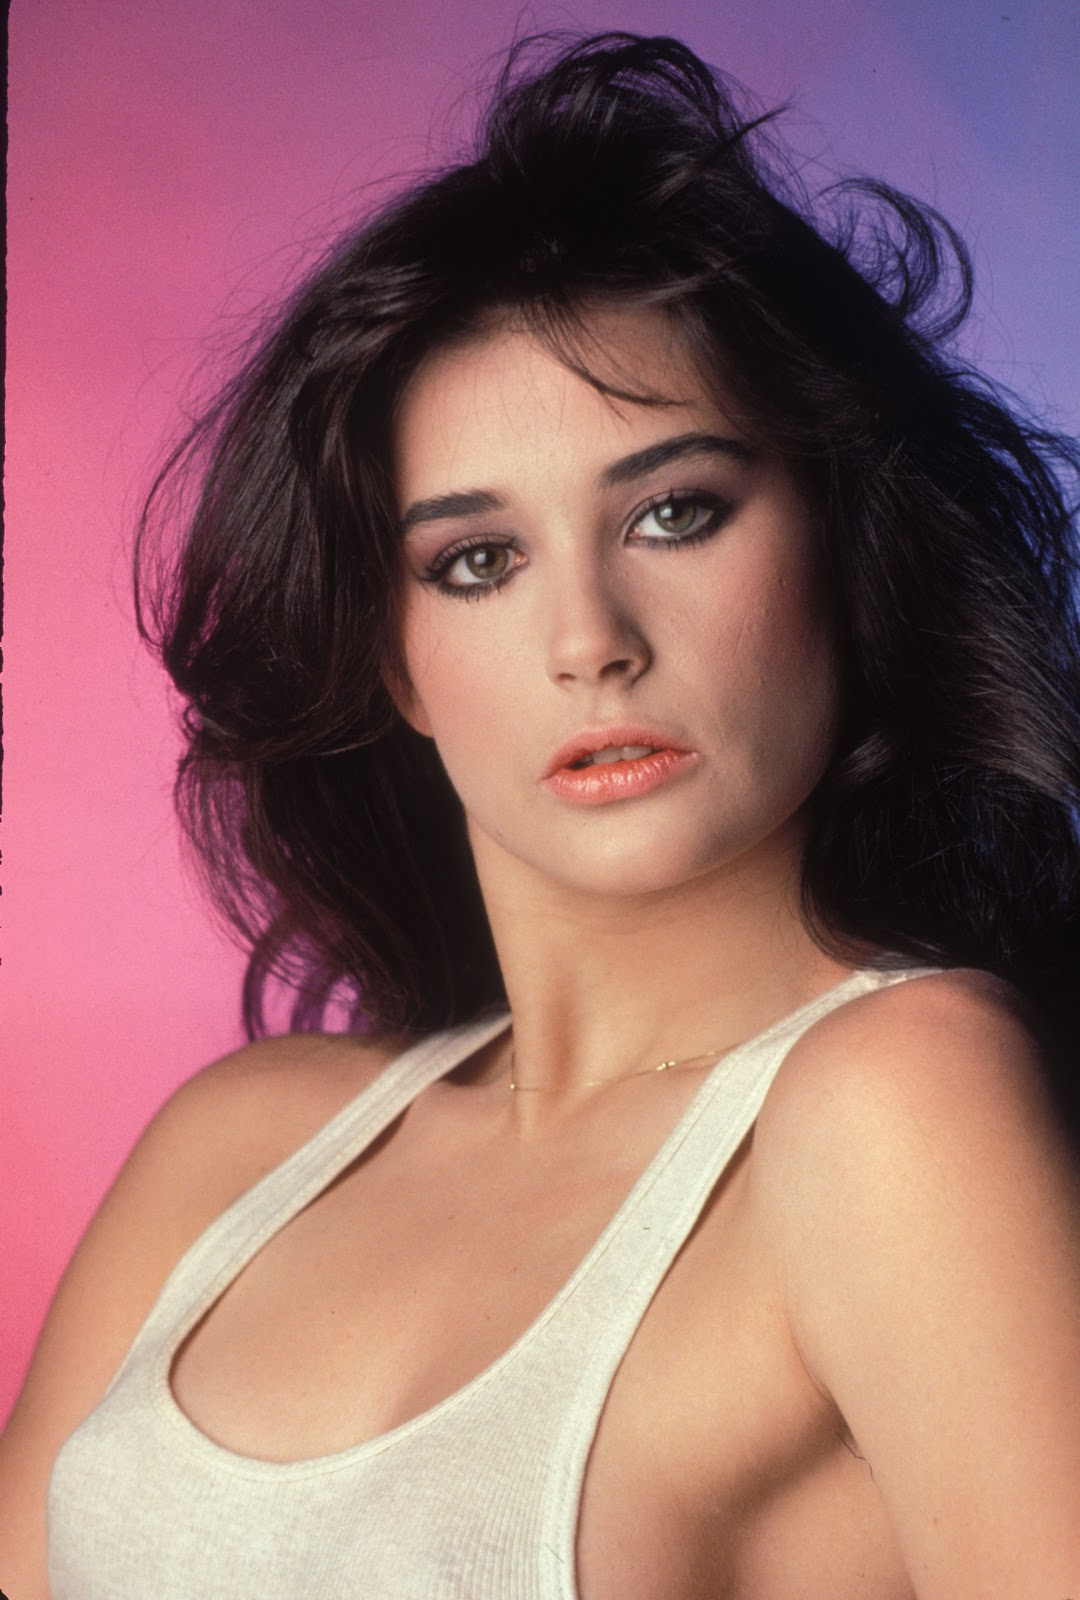 Nude pics of demi moore Nude Photos 94